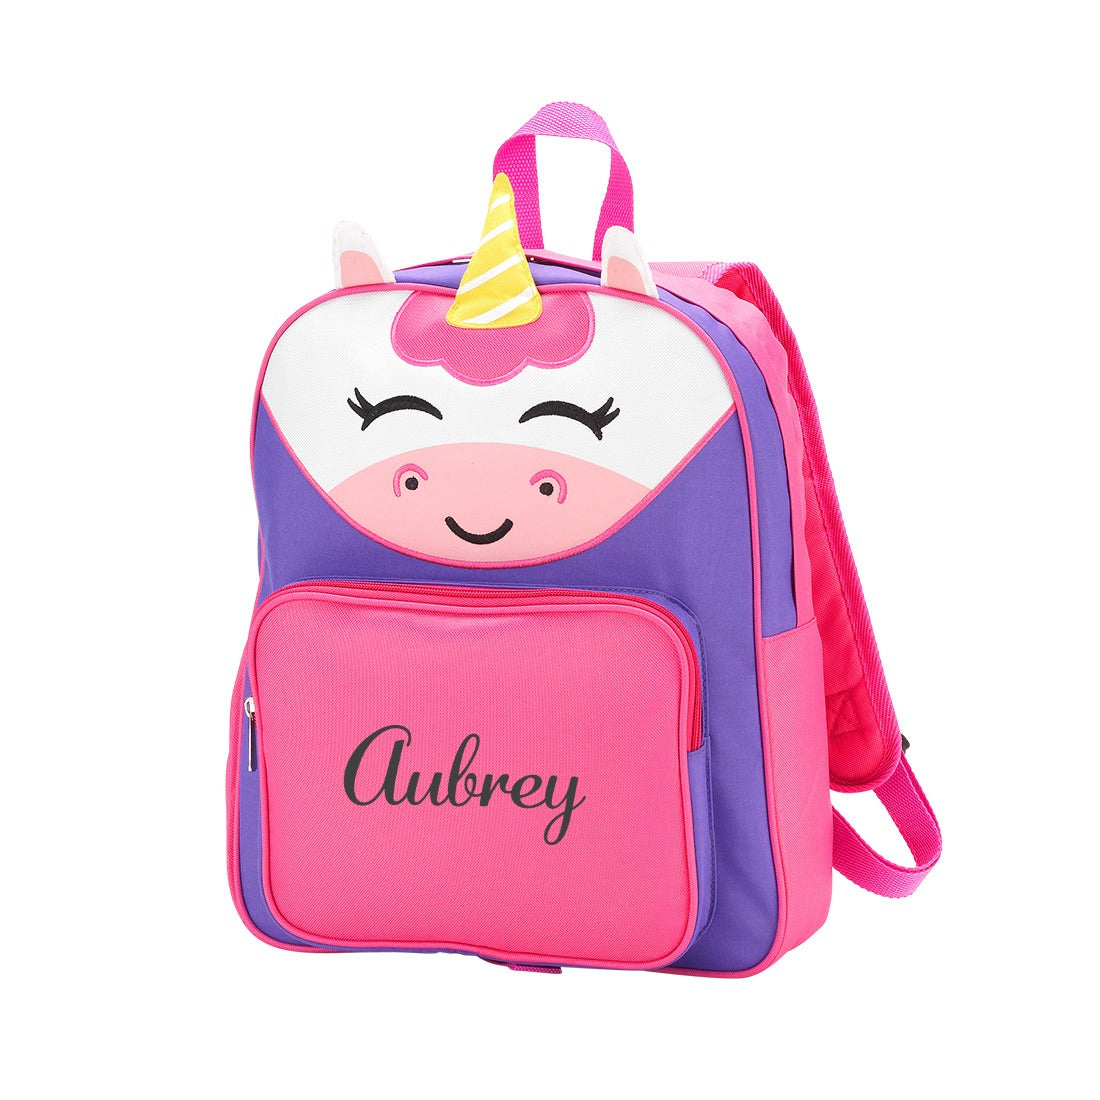 Embroidered Pink Toddler Unicorn Backpack Monogrammed Girls Preschool Unicorn Backpack,Monogrammed Pre K Pink Purple Backpack and Lunch Bag